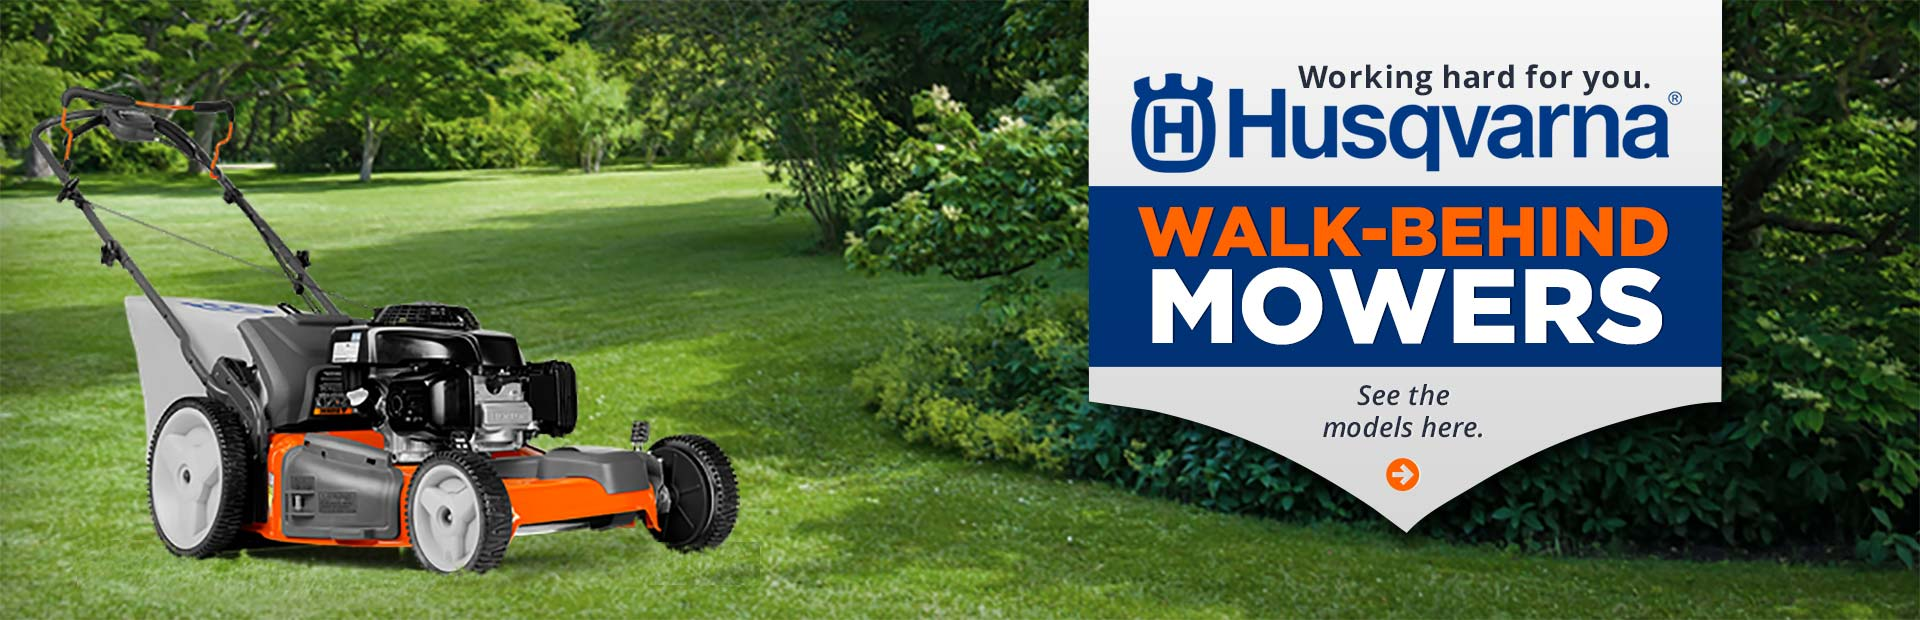 Buddys Small Engine Provides Premium Powersports Products And Rear Riding Mower On Honda Parts Diagram Husqvarna Walk Behind Mowers Click Here To View The Models